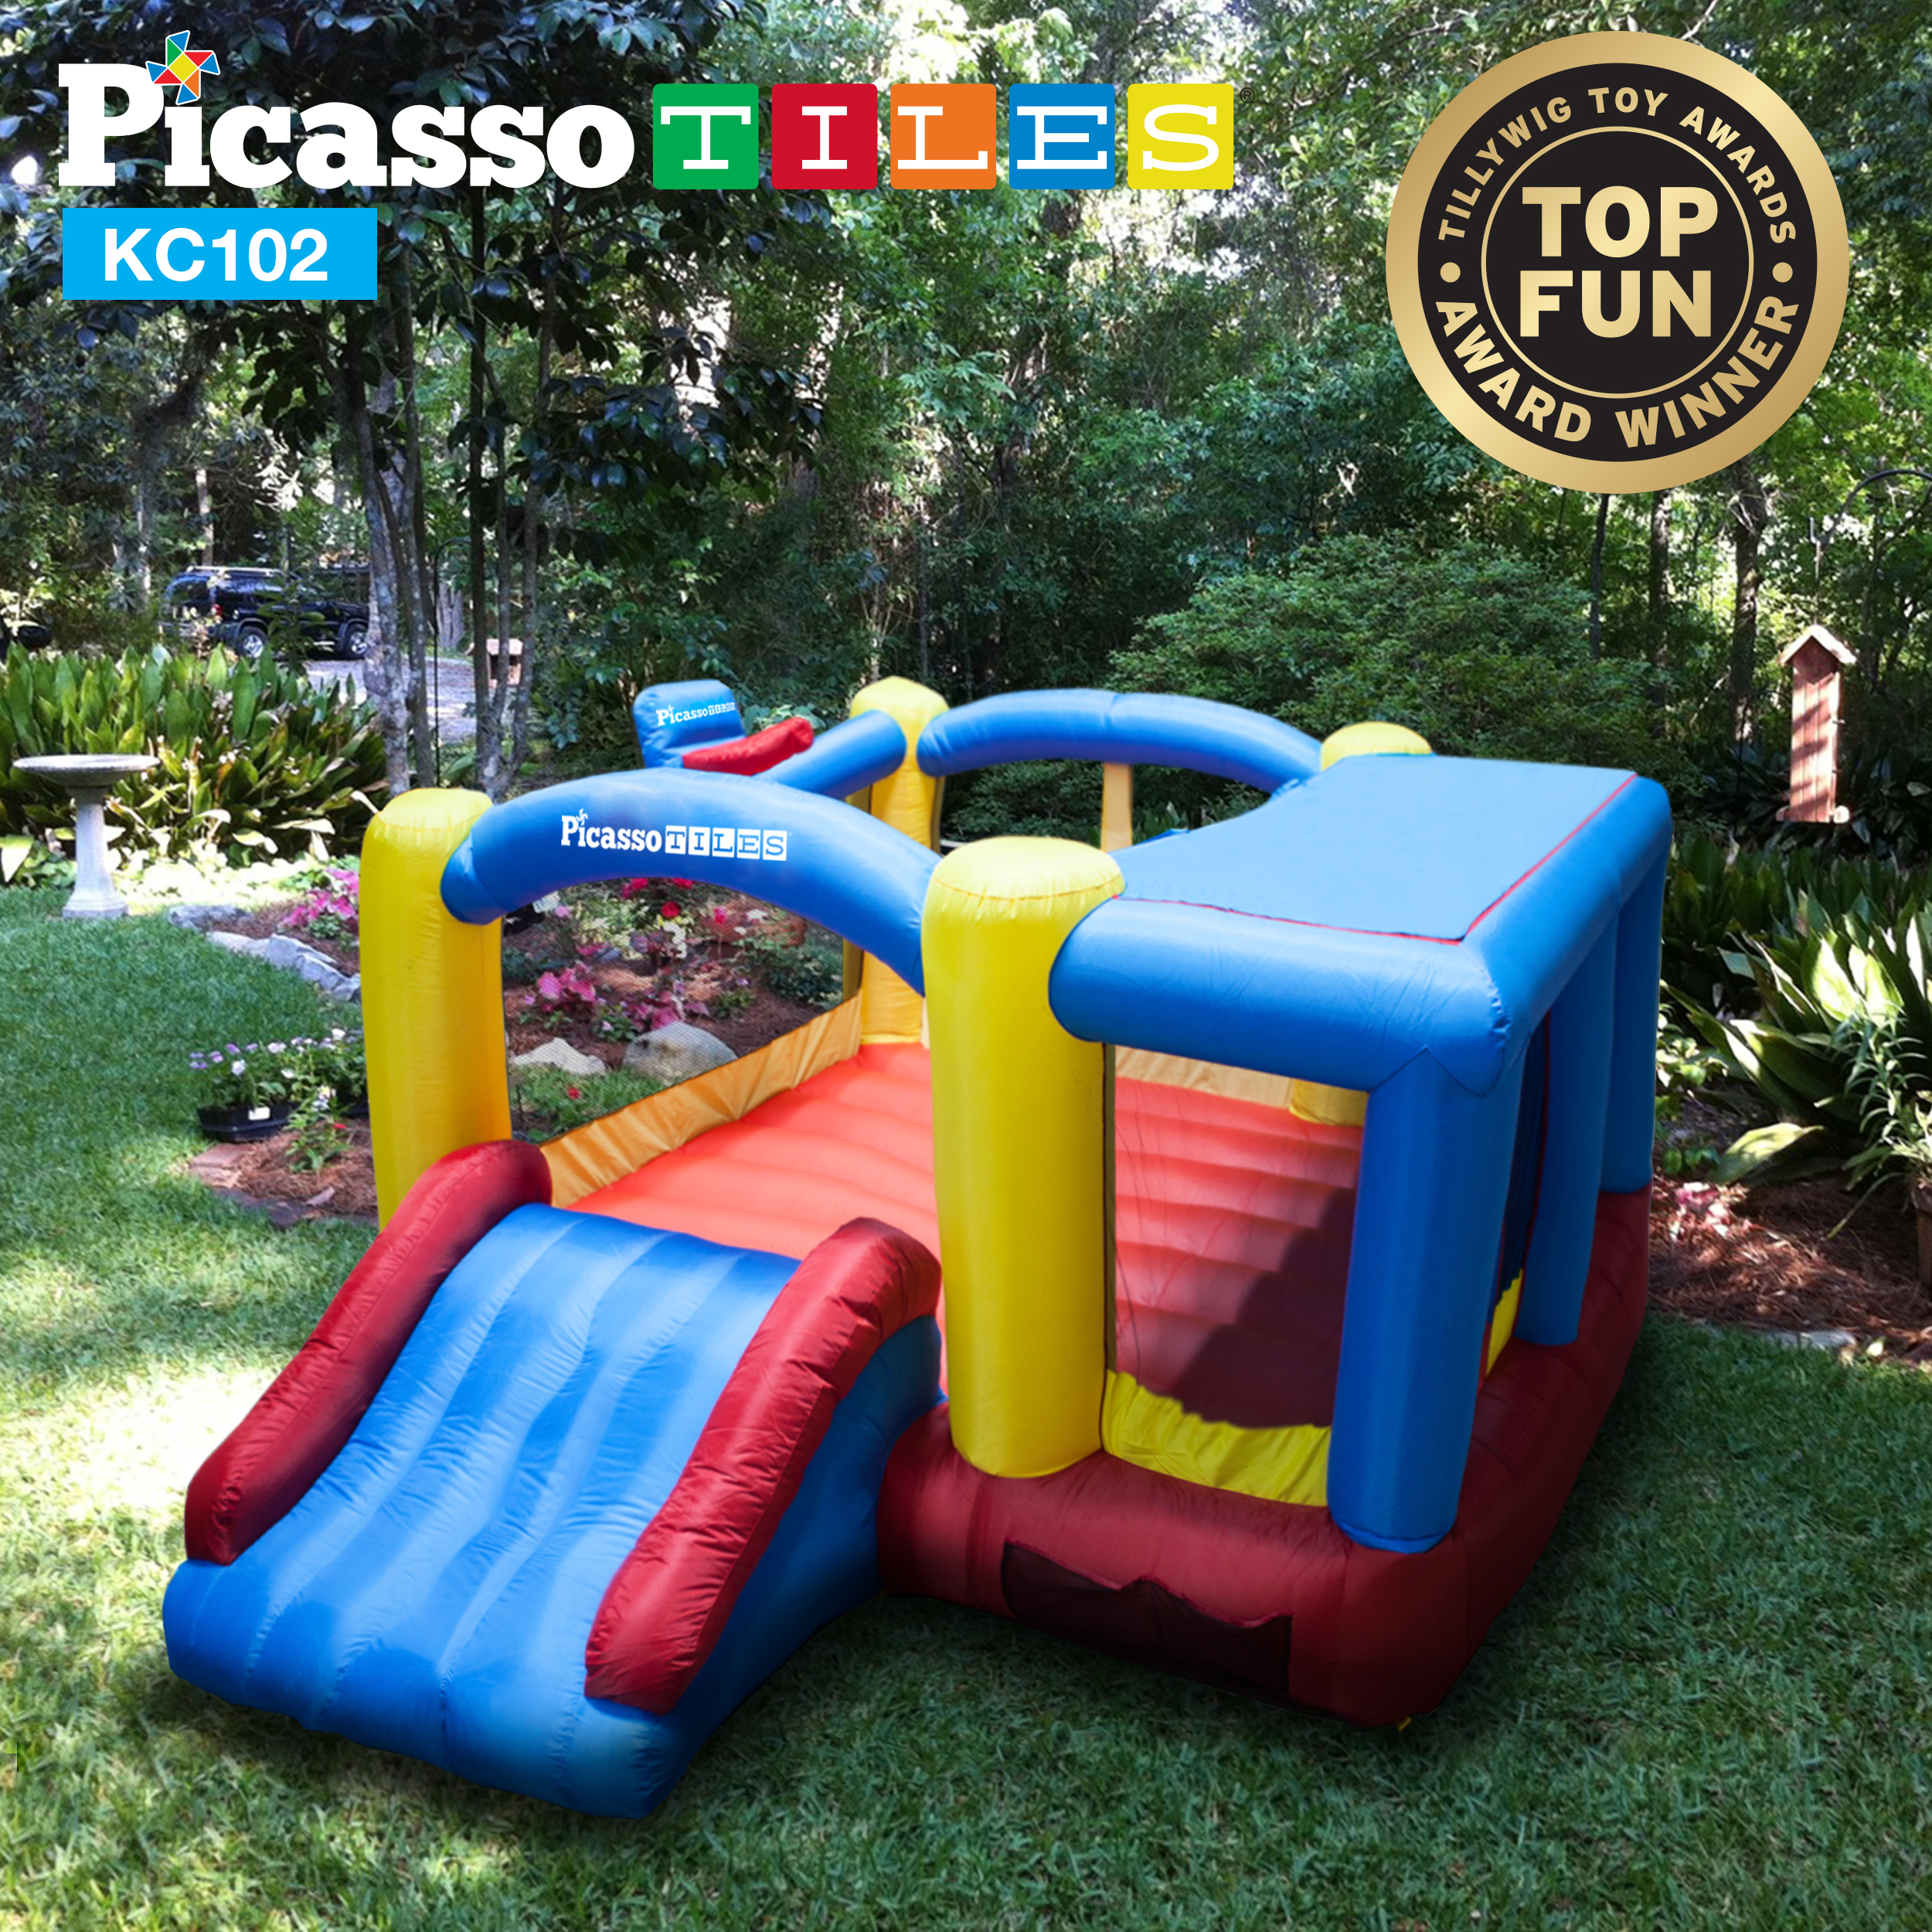 [Upgrade Version] PicassoTiles KC102 12' x 10' Inflatable Bouncer Jumping House, Slide and Dunk Playhouse Feature Basketball Rim, 4 Sports Balls, Extended Slider, Full Size Entry and Quick Setup